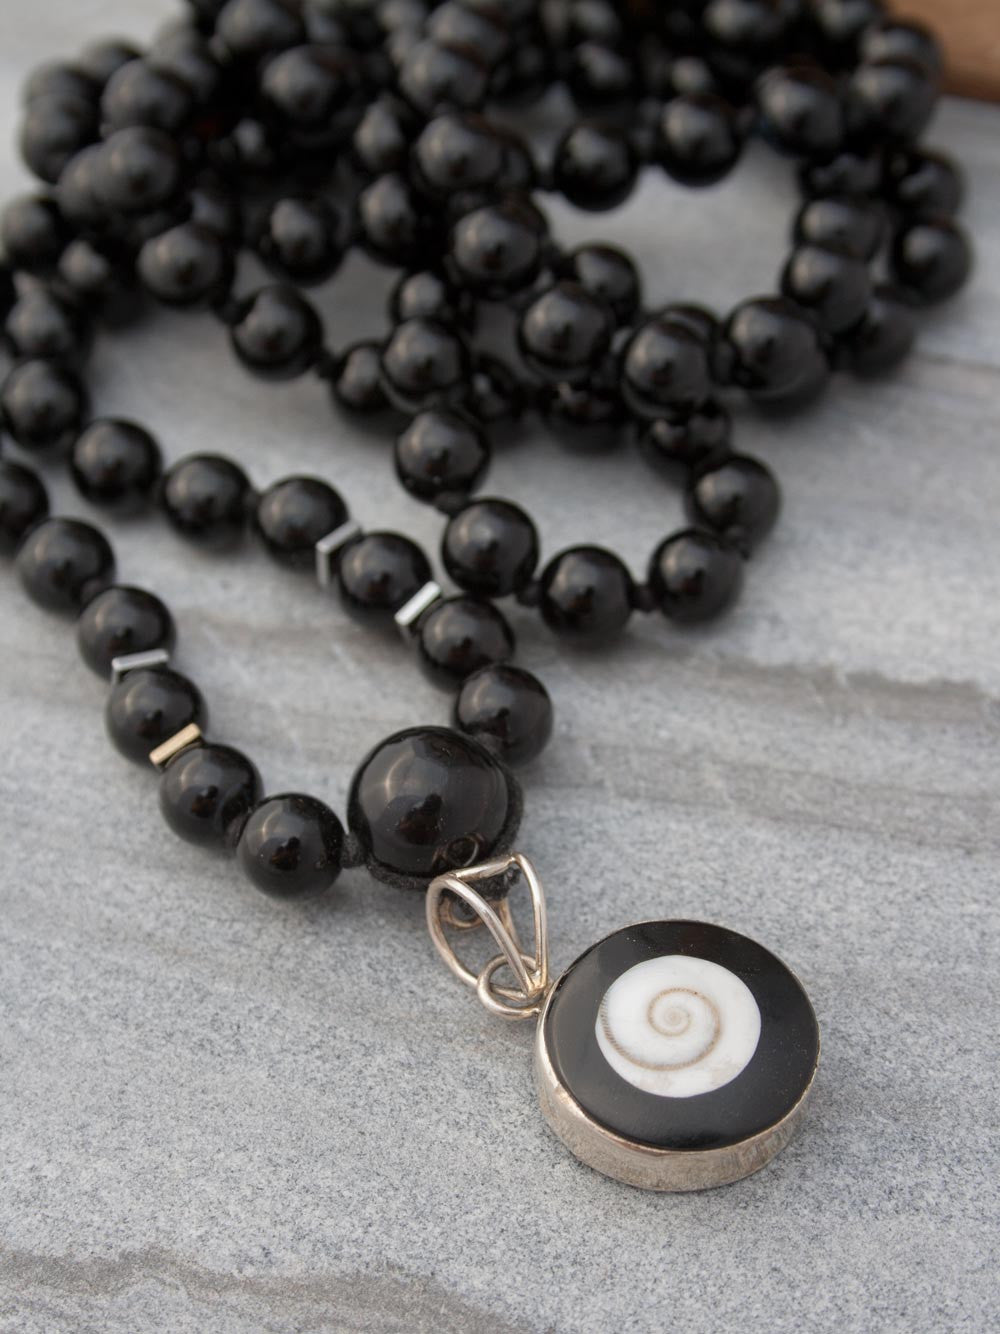 Absolute Bliss Mala, in obsidian onyx, has an ivory shell,  black onyx & silver Shiv Eye pendant: alternate view of Shiv Eye